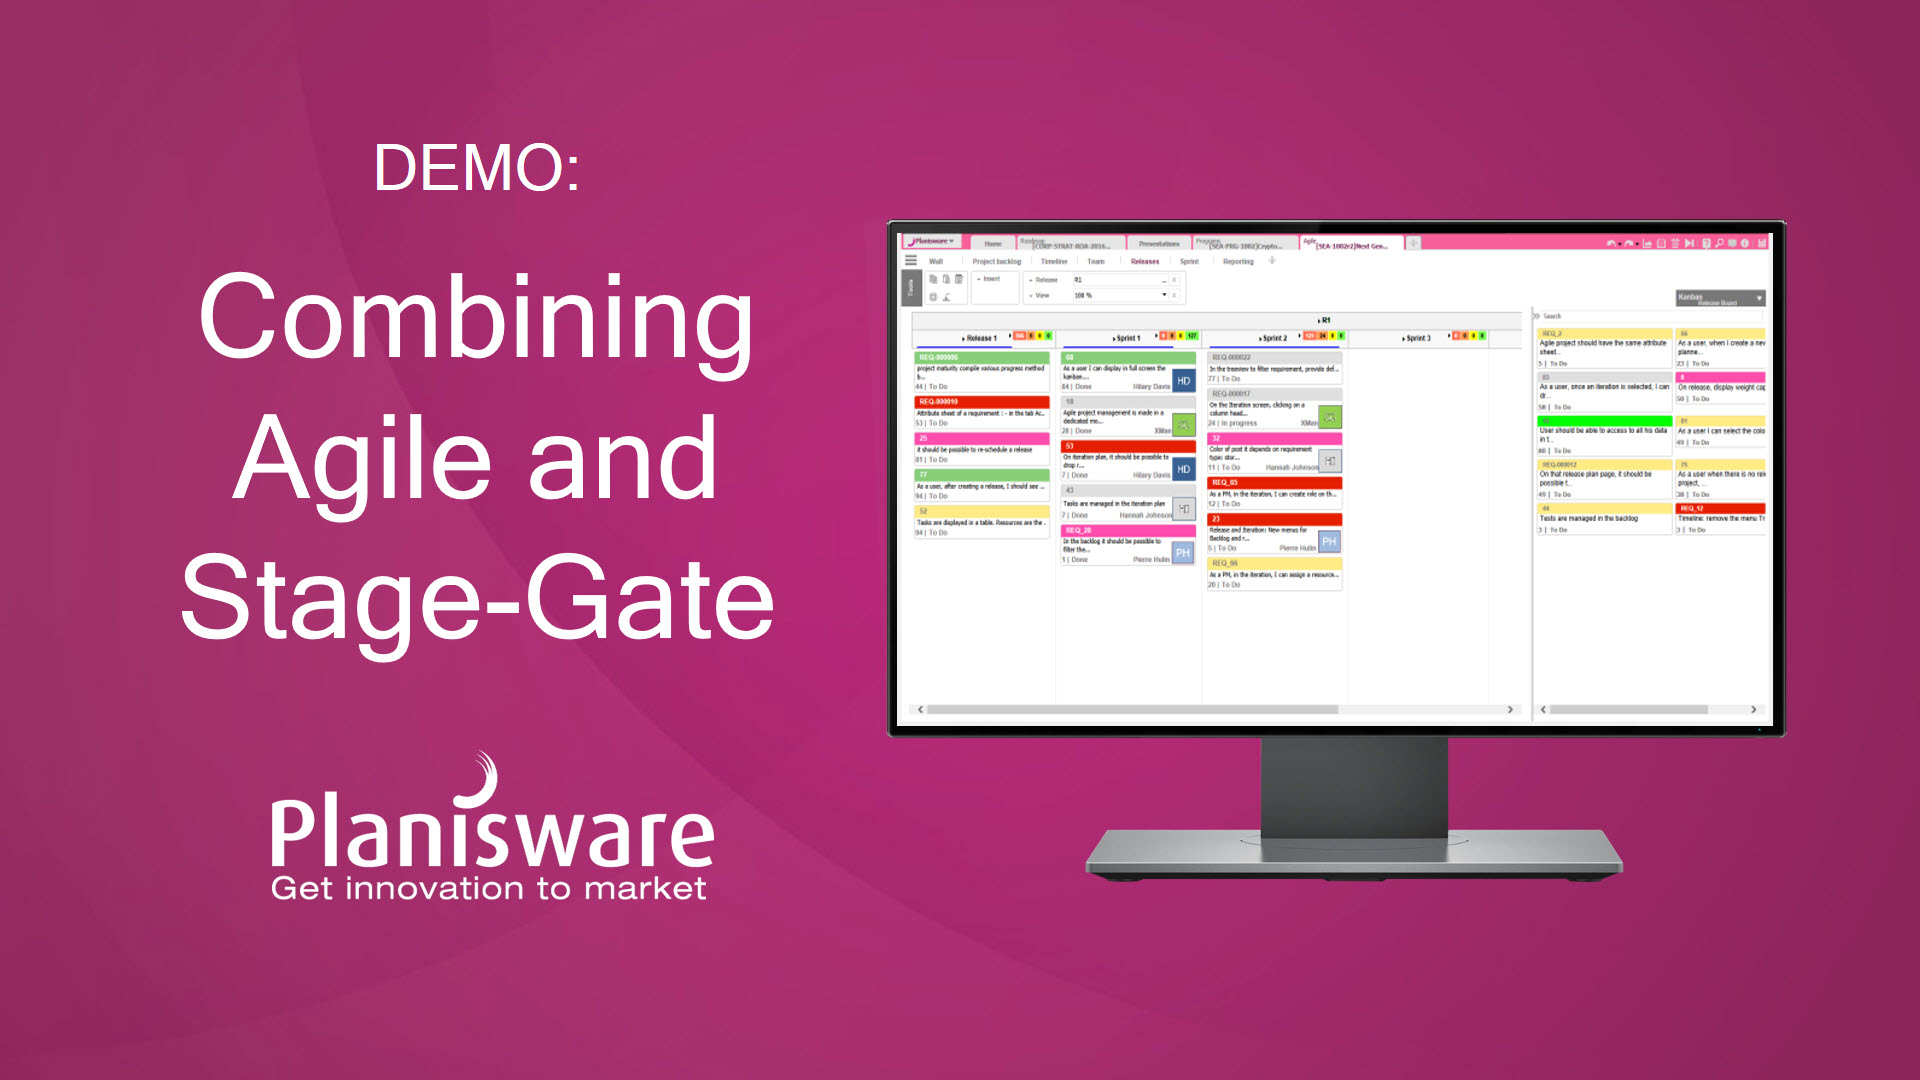 Planisware Demo Combining Agile And Stage Gate For New